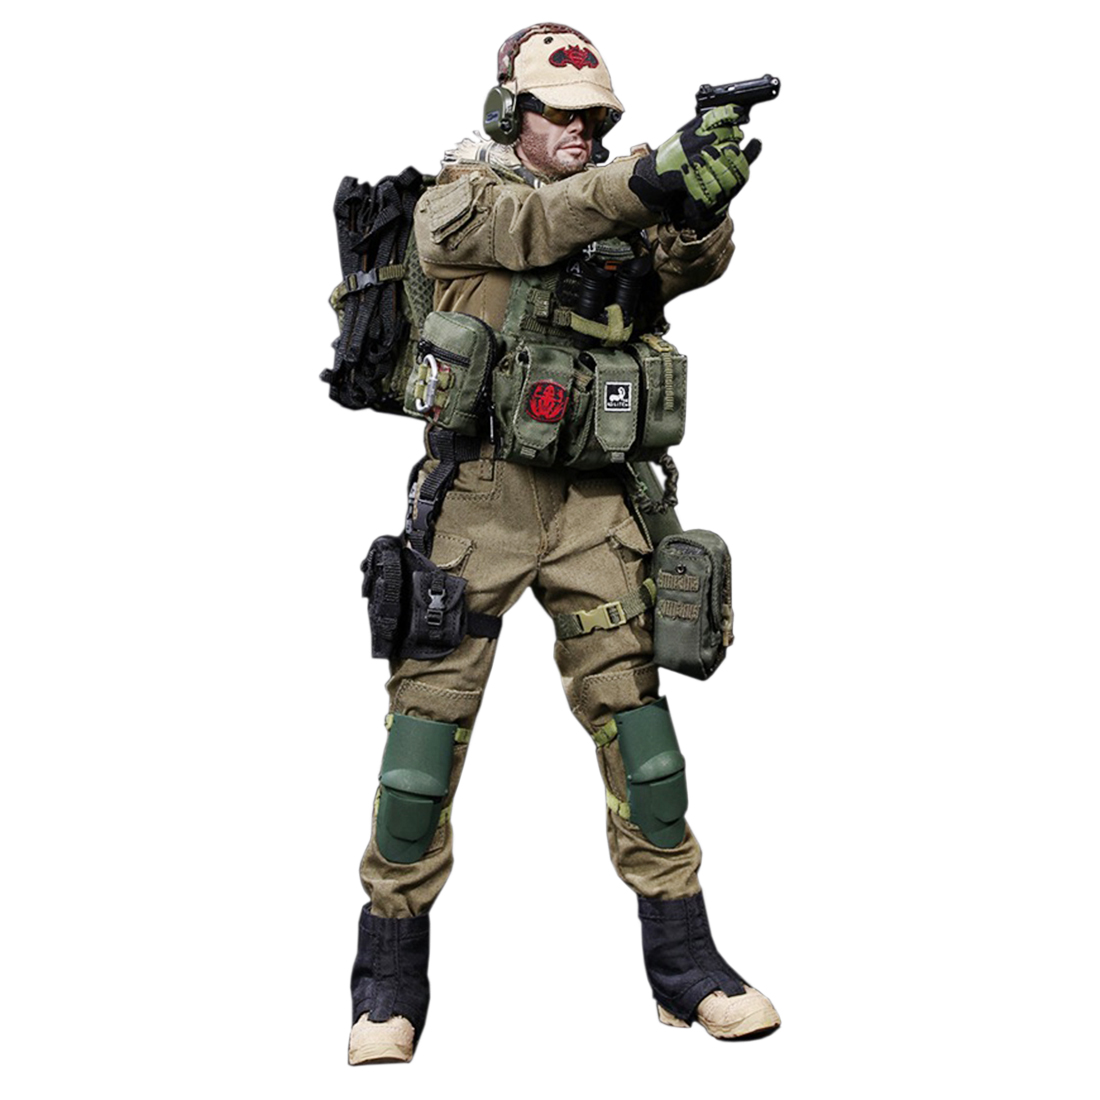 NFSTRIKE 30cm 1 6 Israeli Special Forces Movable Figure Military Soldier Model For Kids Adults Gift